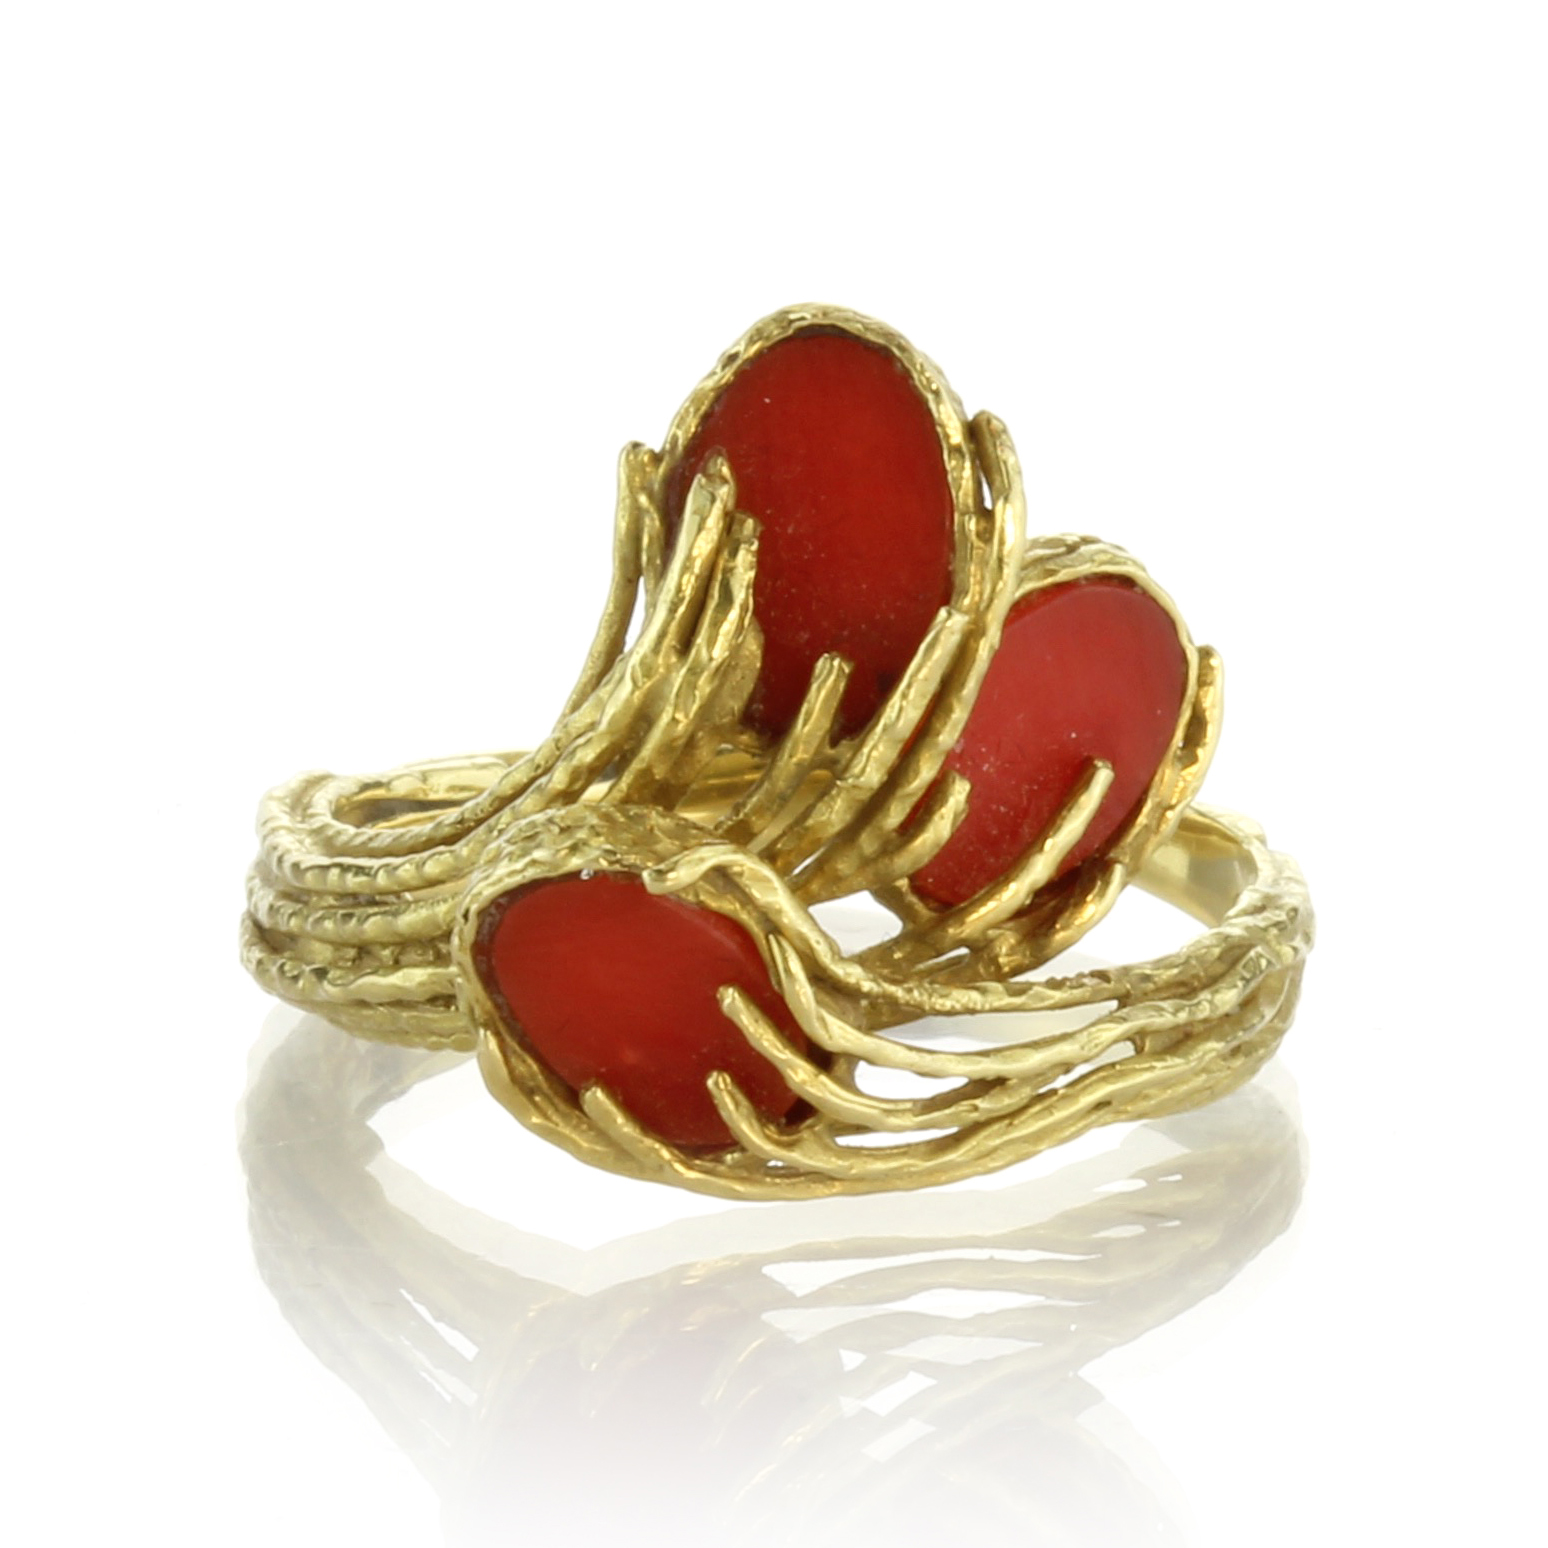 Los 38 - A vintage coral dress ring in 18ct yellow gold set with three oval panels of coral within a textured